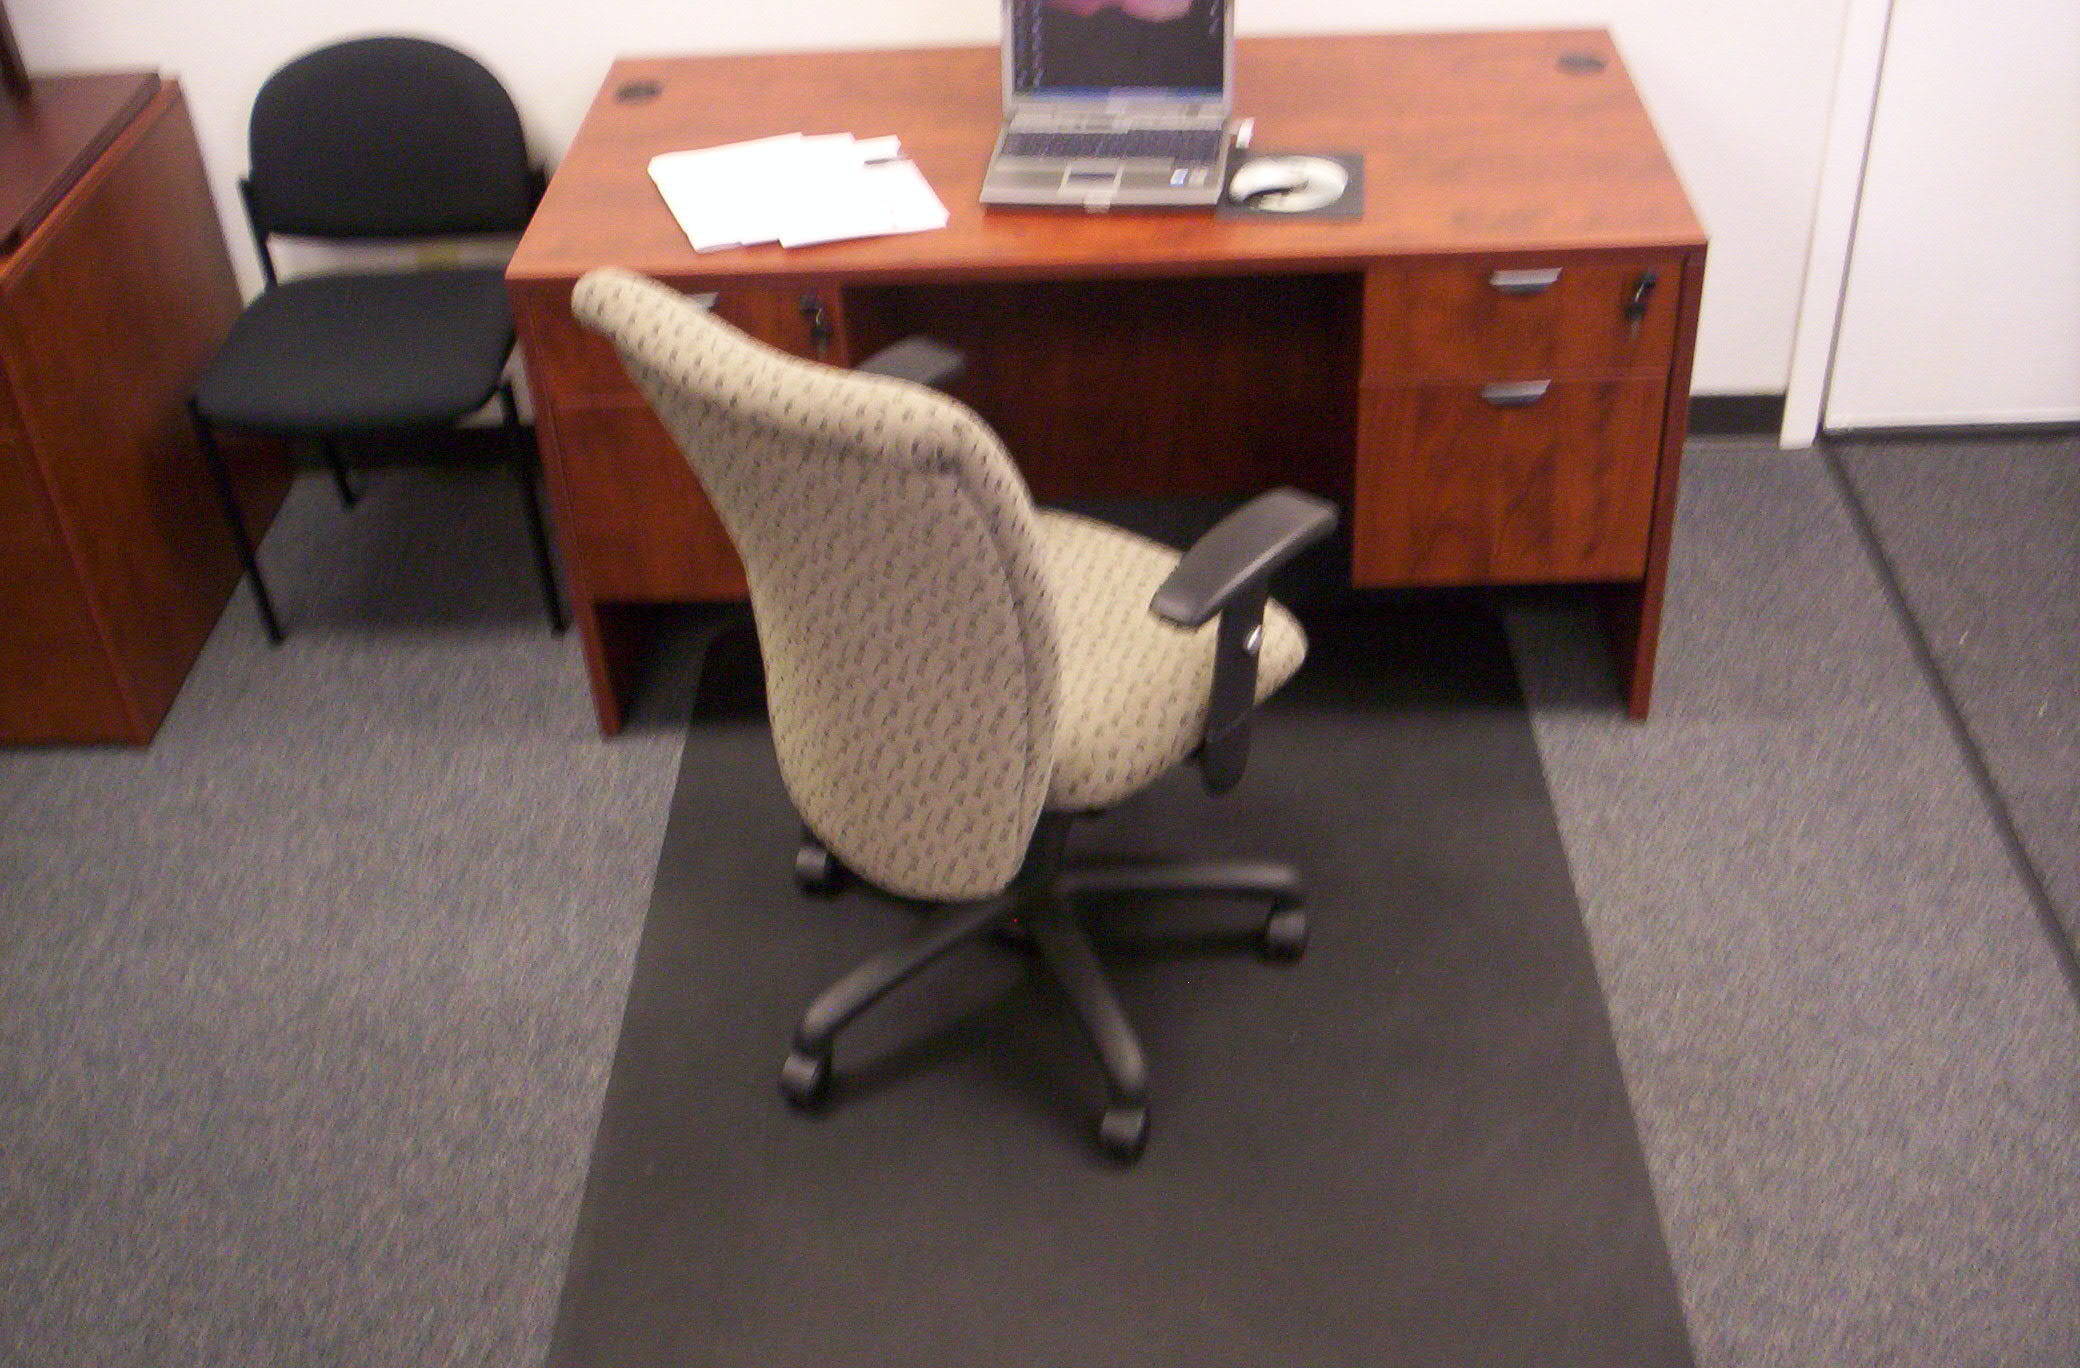 Black Eco Mat Pictured The Worlds Only 100 Recycled Chairmat Made From Rubber Tires And Plastic Sizes Up To 72 Wide 50 Long